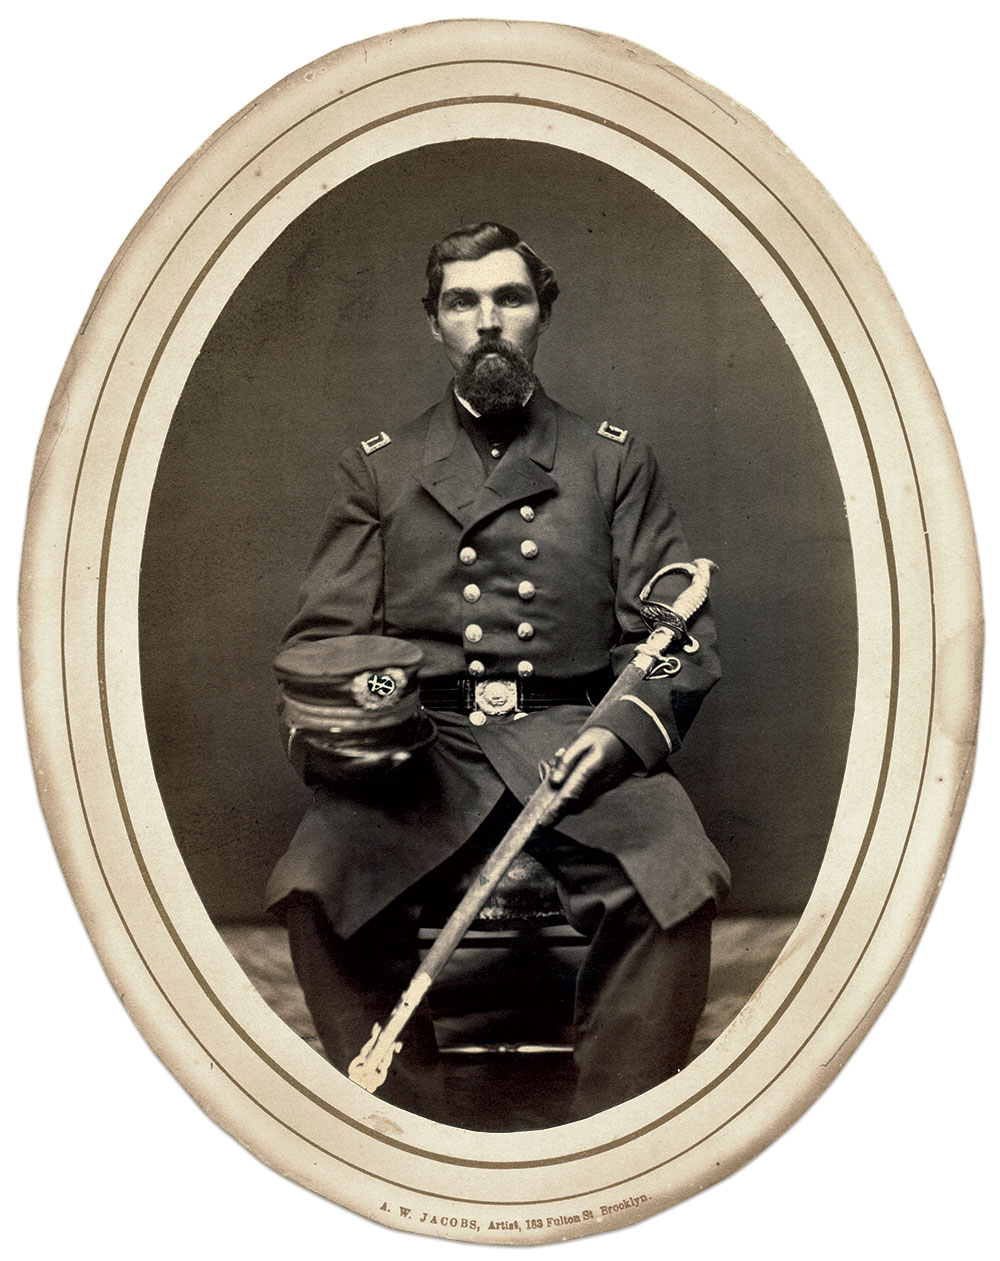 Abner Dodge Stover. Albumen print by A.W. Jacobs of Brooklyn, N.Y.